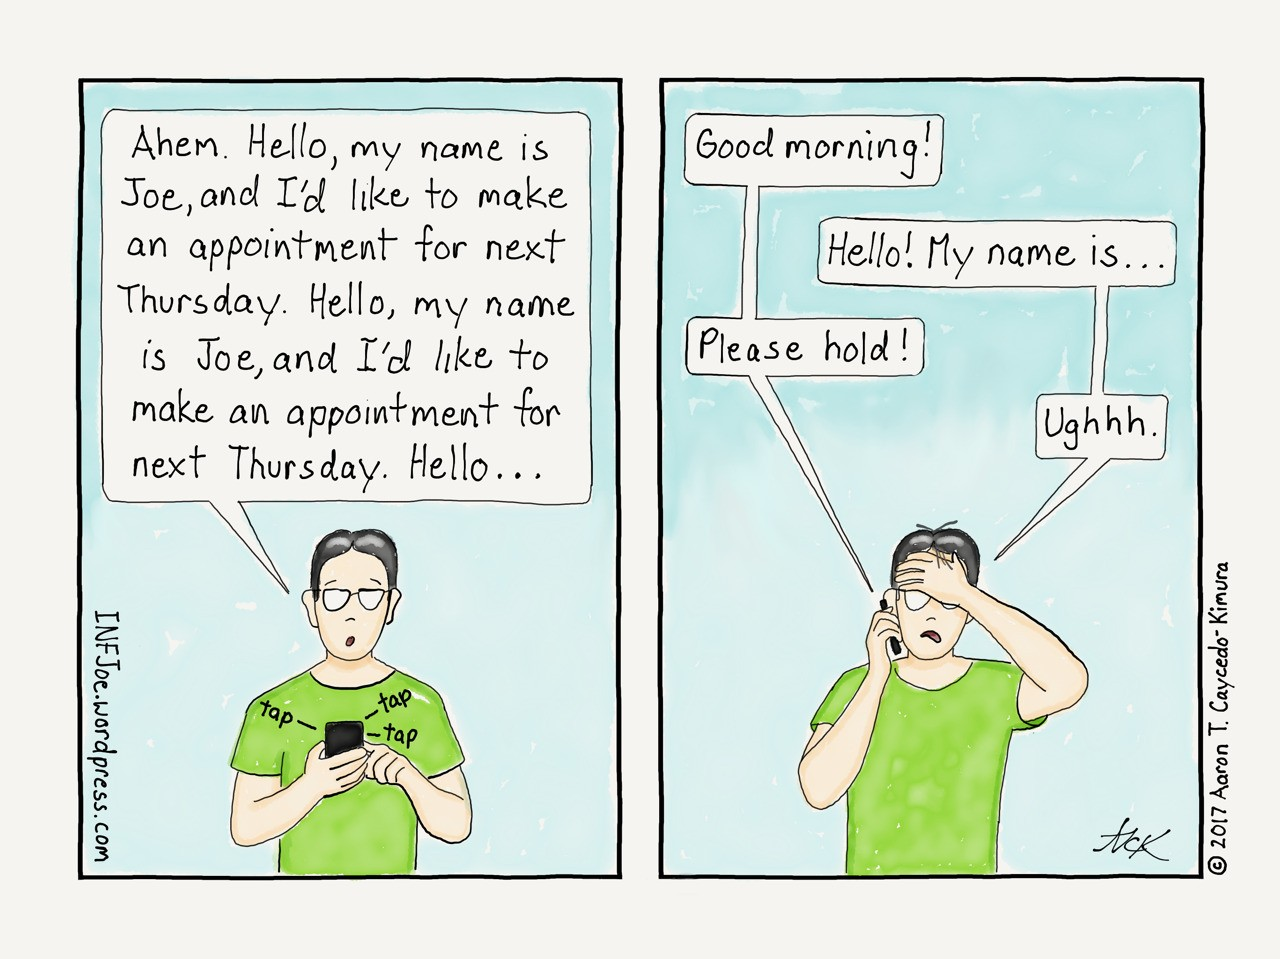 a comic about INFJoe making an appointment over the phone